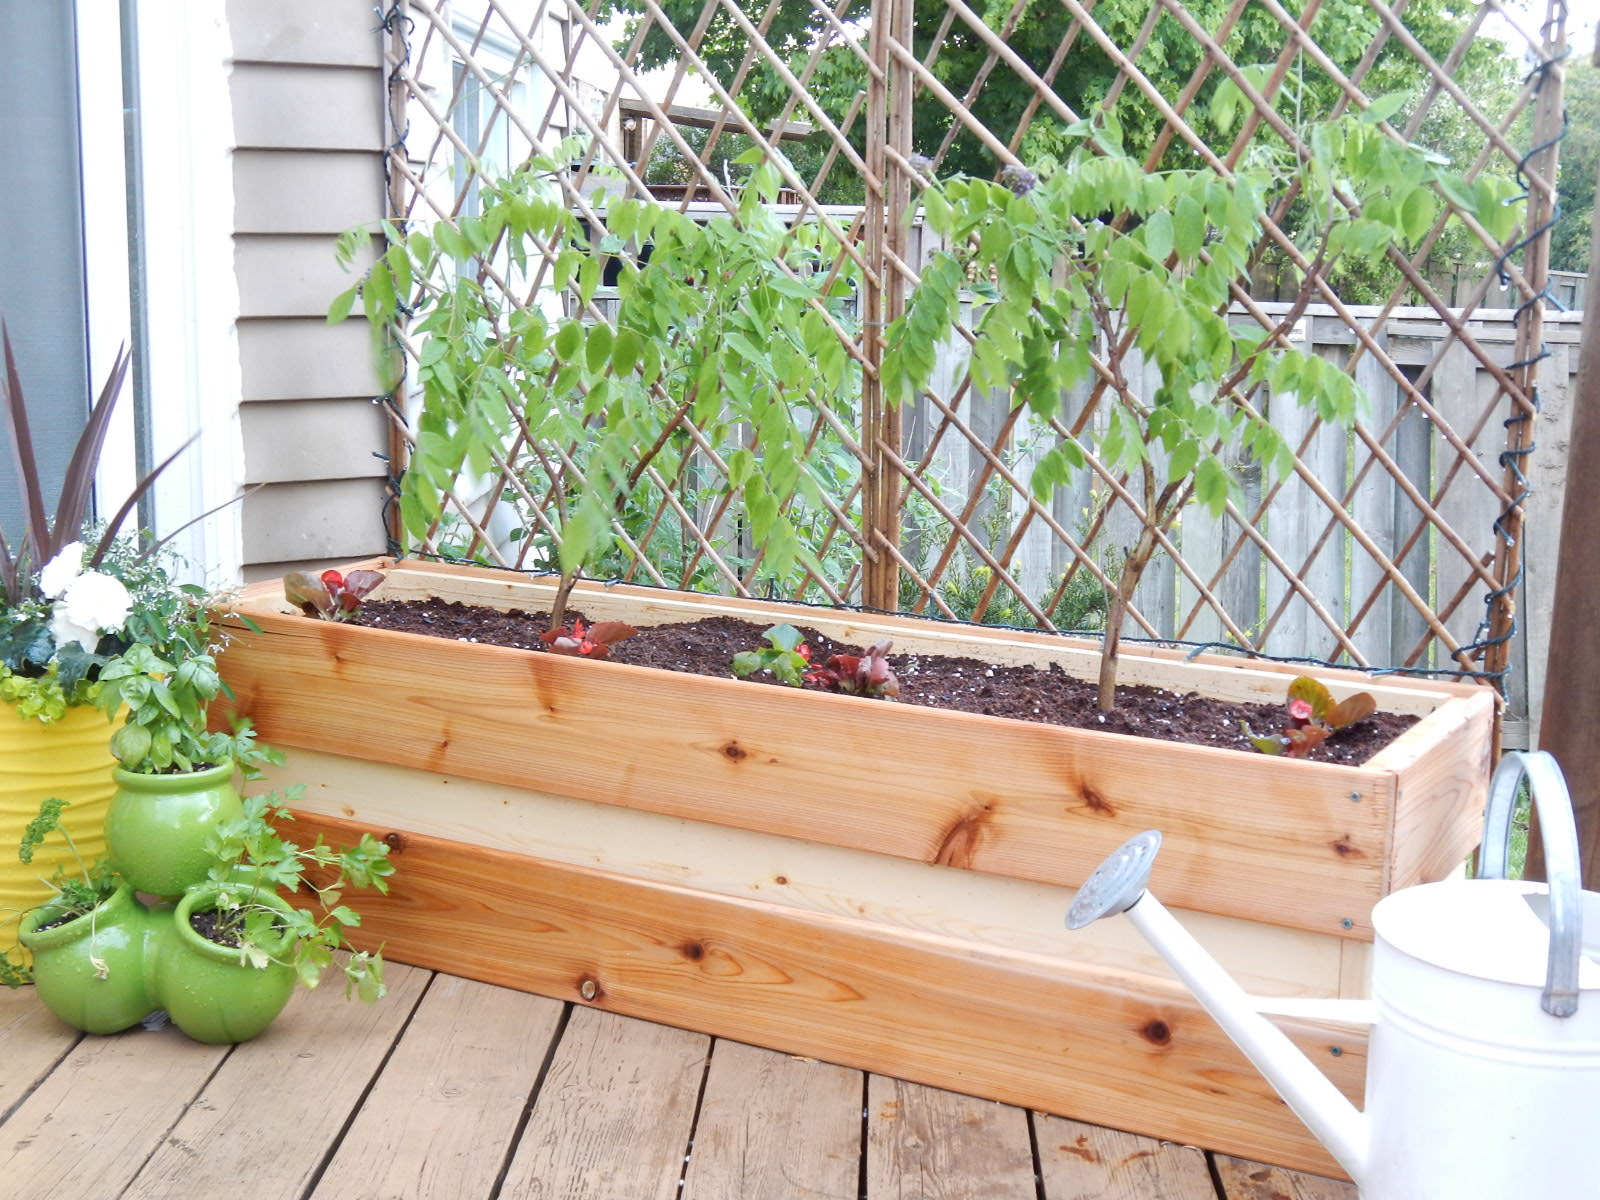 Diy Deck Flower Boxes Planting For Privacy Diy Wood Planter Just Decorate